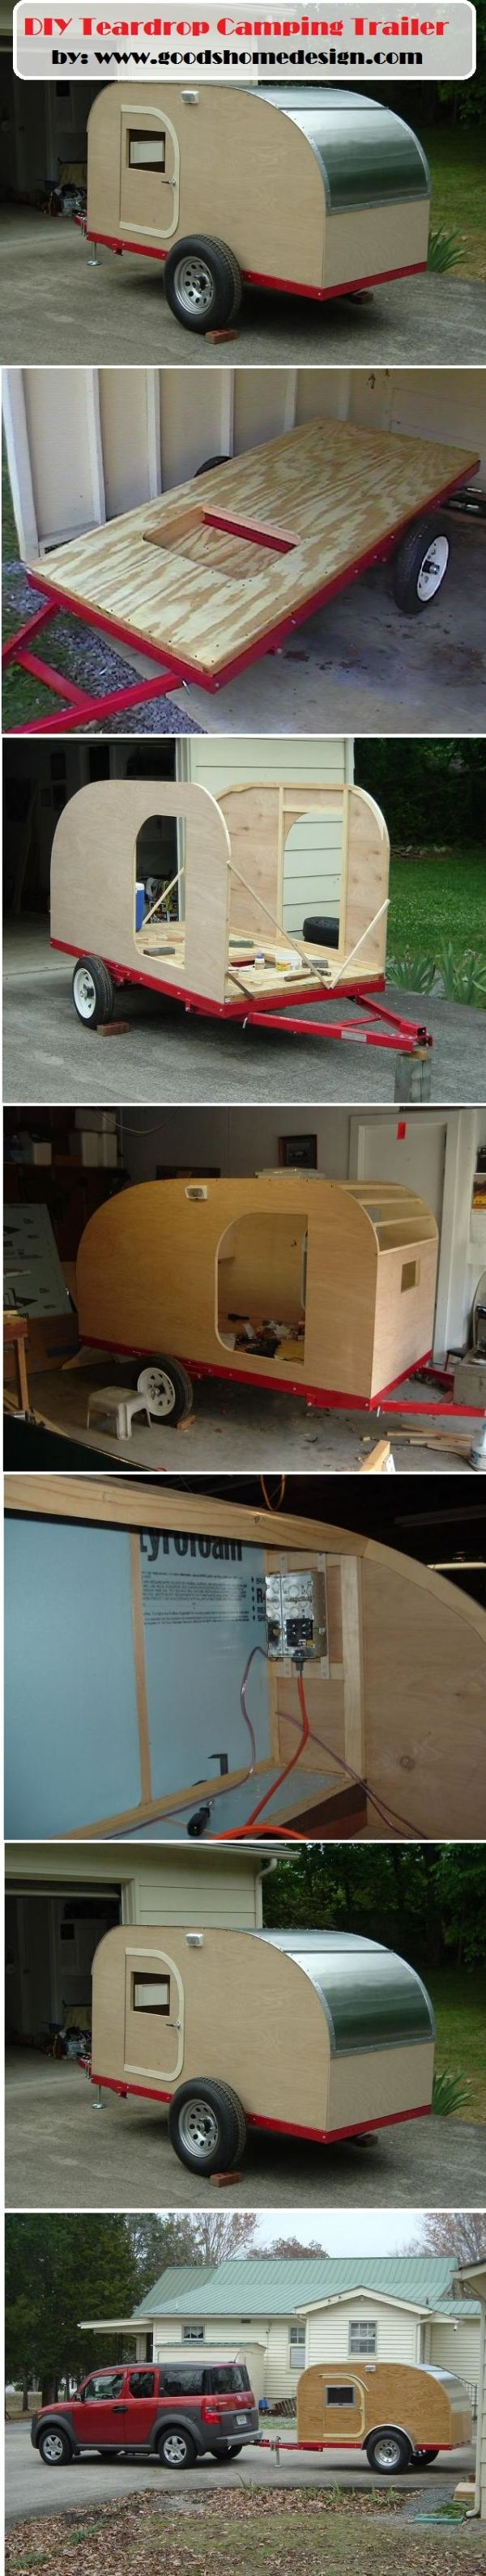 Best 263 Images On Pinterest Aliner Campers Plug Setup 2008 Camper Wiring Teds Woodworking Diy Teardrop Camping Trailer Next Project Bonis Conseil Paul Scherer Metzler Projects You Can Start Building Today